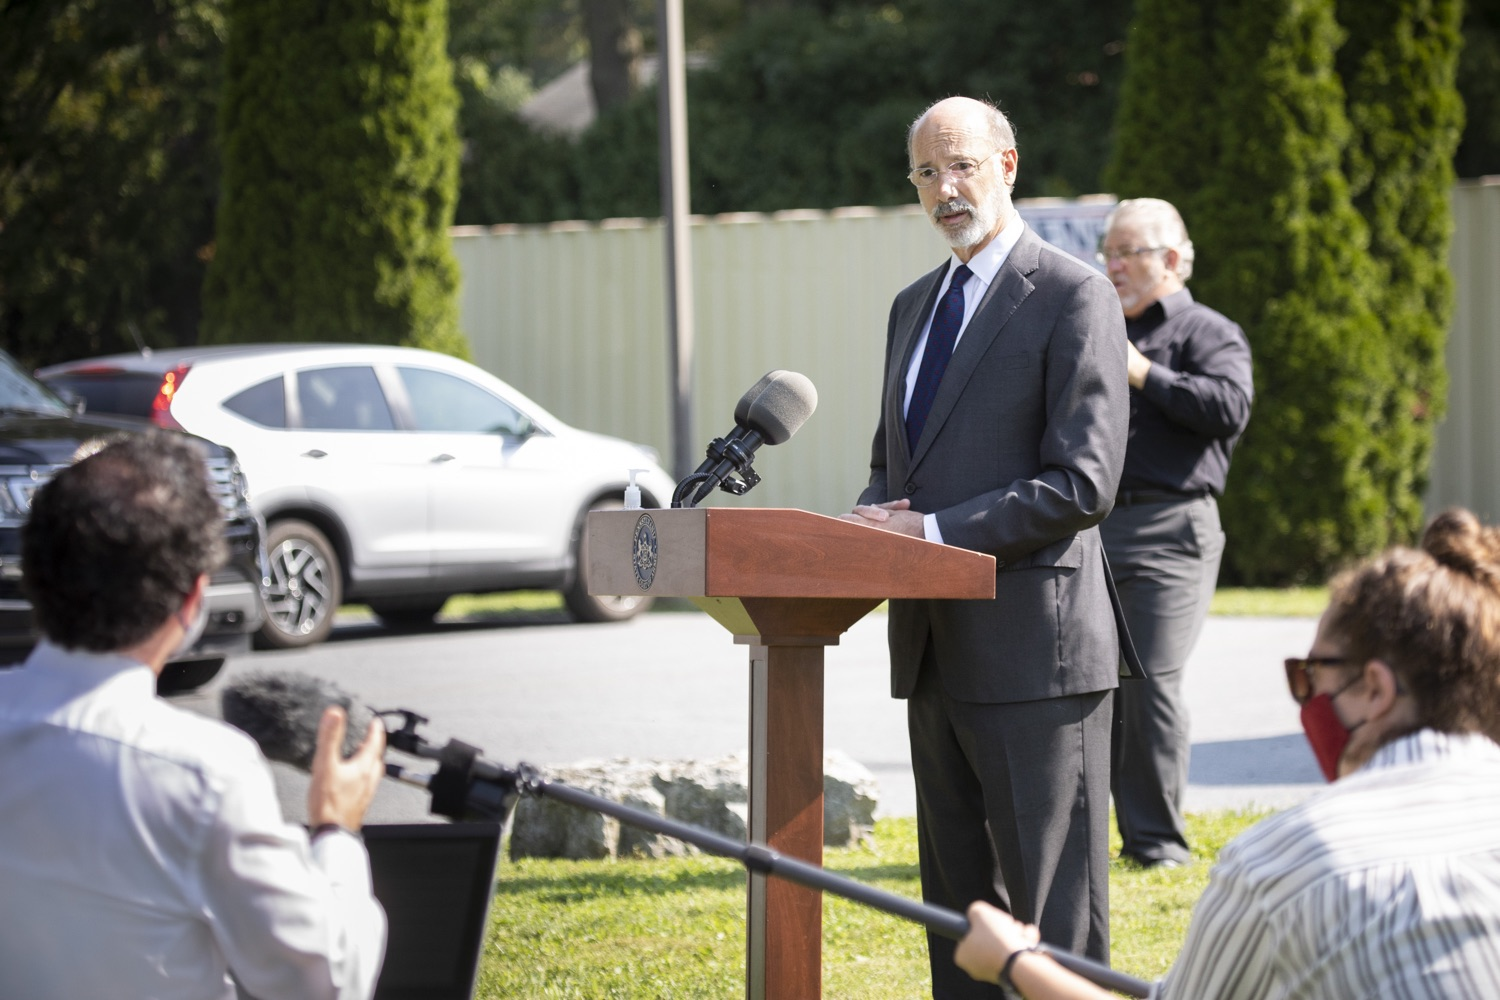 "<a href=""https://filesource.wostreaming.net/commonwealthofpa/photo/18248_gov_evictions_dz_033.jpg"" target=""_blank"">⇣ Download Photo<br></a>Pennsylvania Governor Tom Wolf speaking to the press. With rent and mortgage debt mounting for hundreds of thousands of Pennsylvanians, Governor Tom Wolf is calling on the General Assembly to fix a state relief program to prevent many families from becoming homeless and enact a moratorium on evictions and foreclosures until the end of the year. The governor was joined today by legislators and housing advocates at a press conference in Lancaster County. Harrisburg, PA  Sept. 8, 2020"